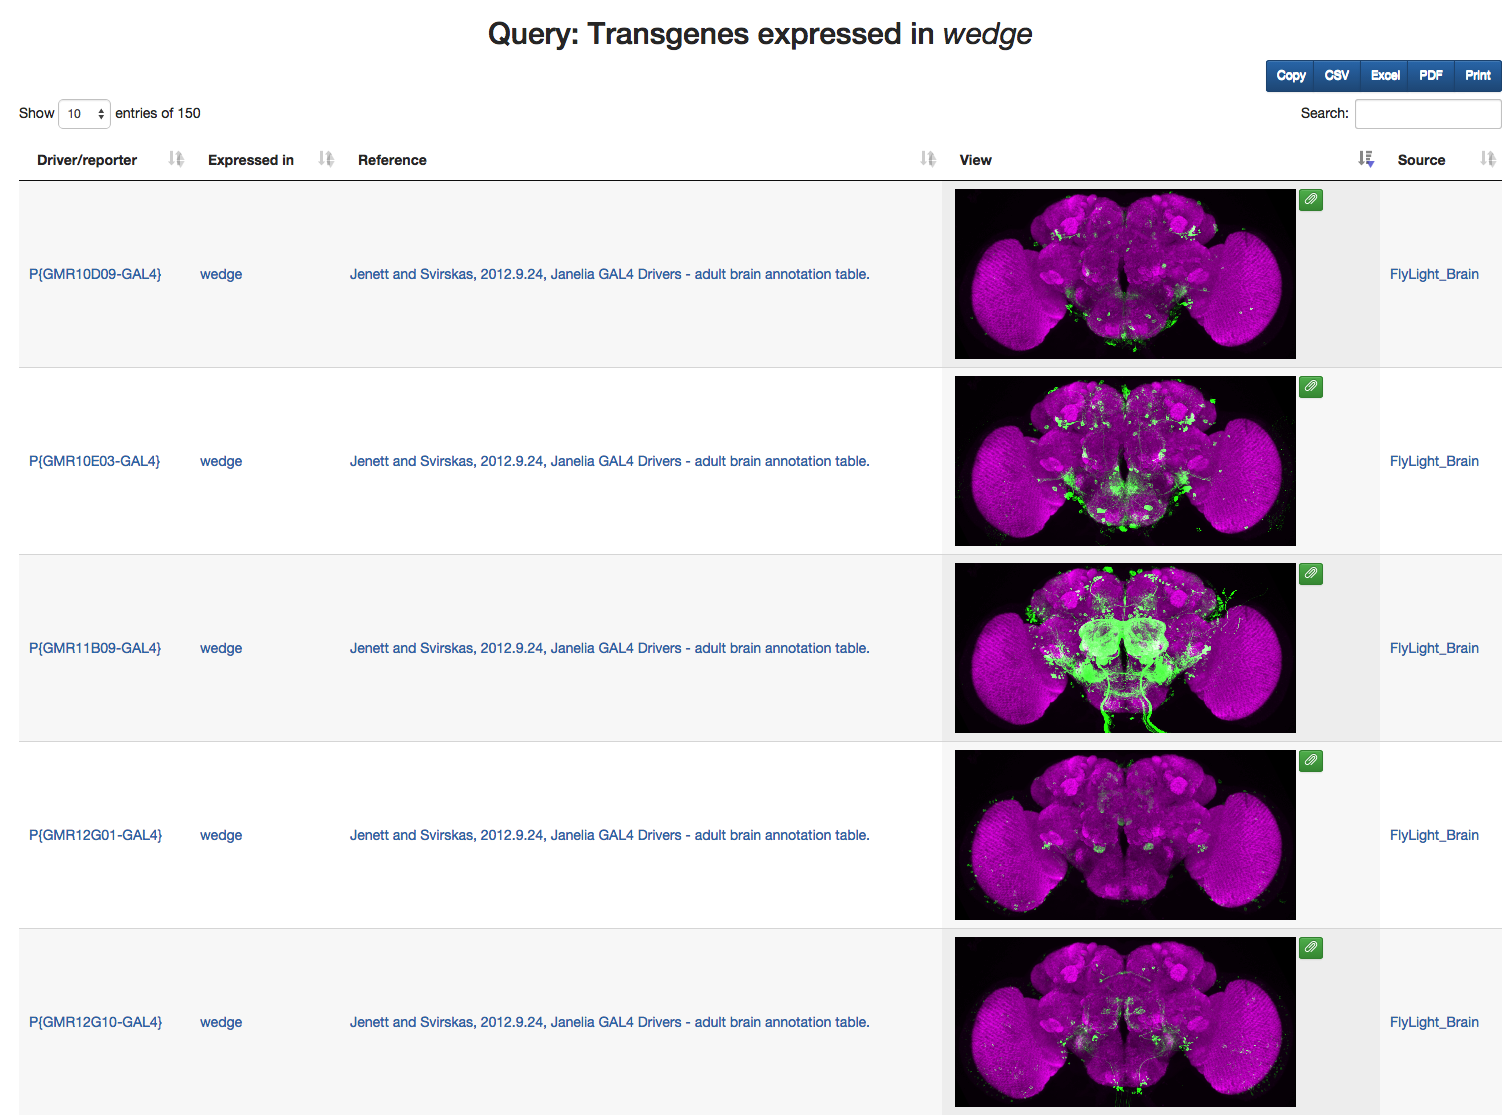 Query results for transgenes